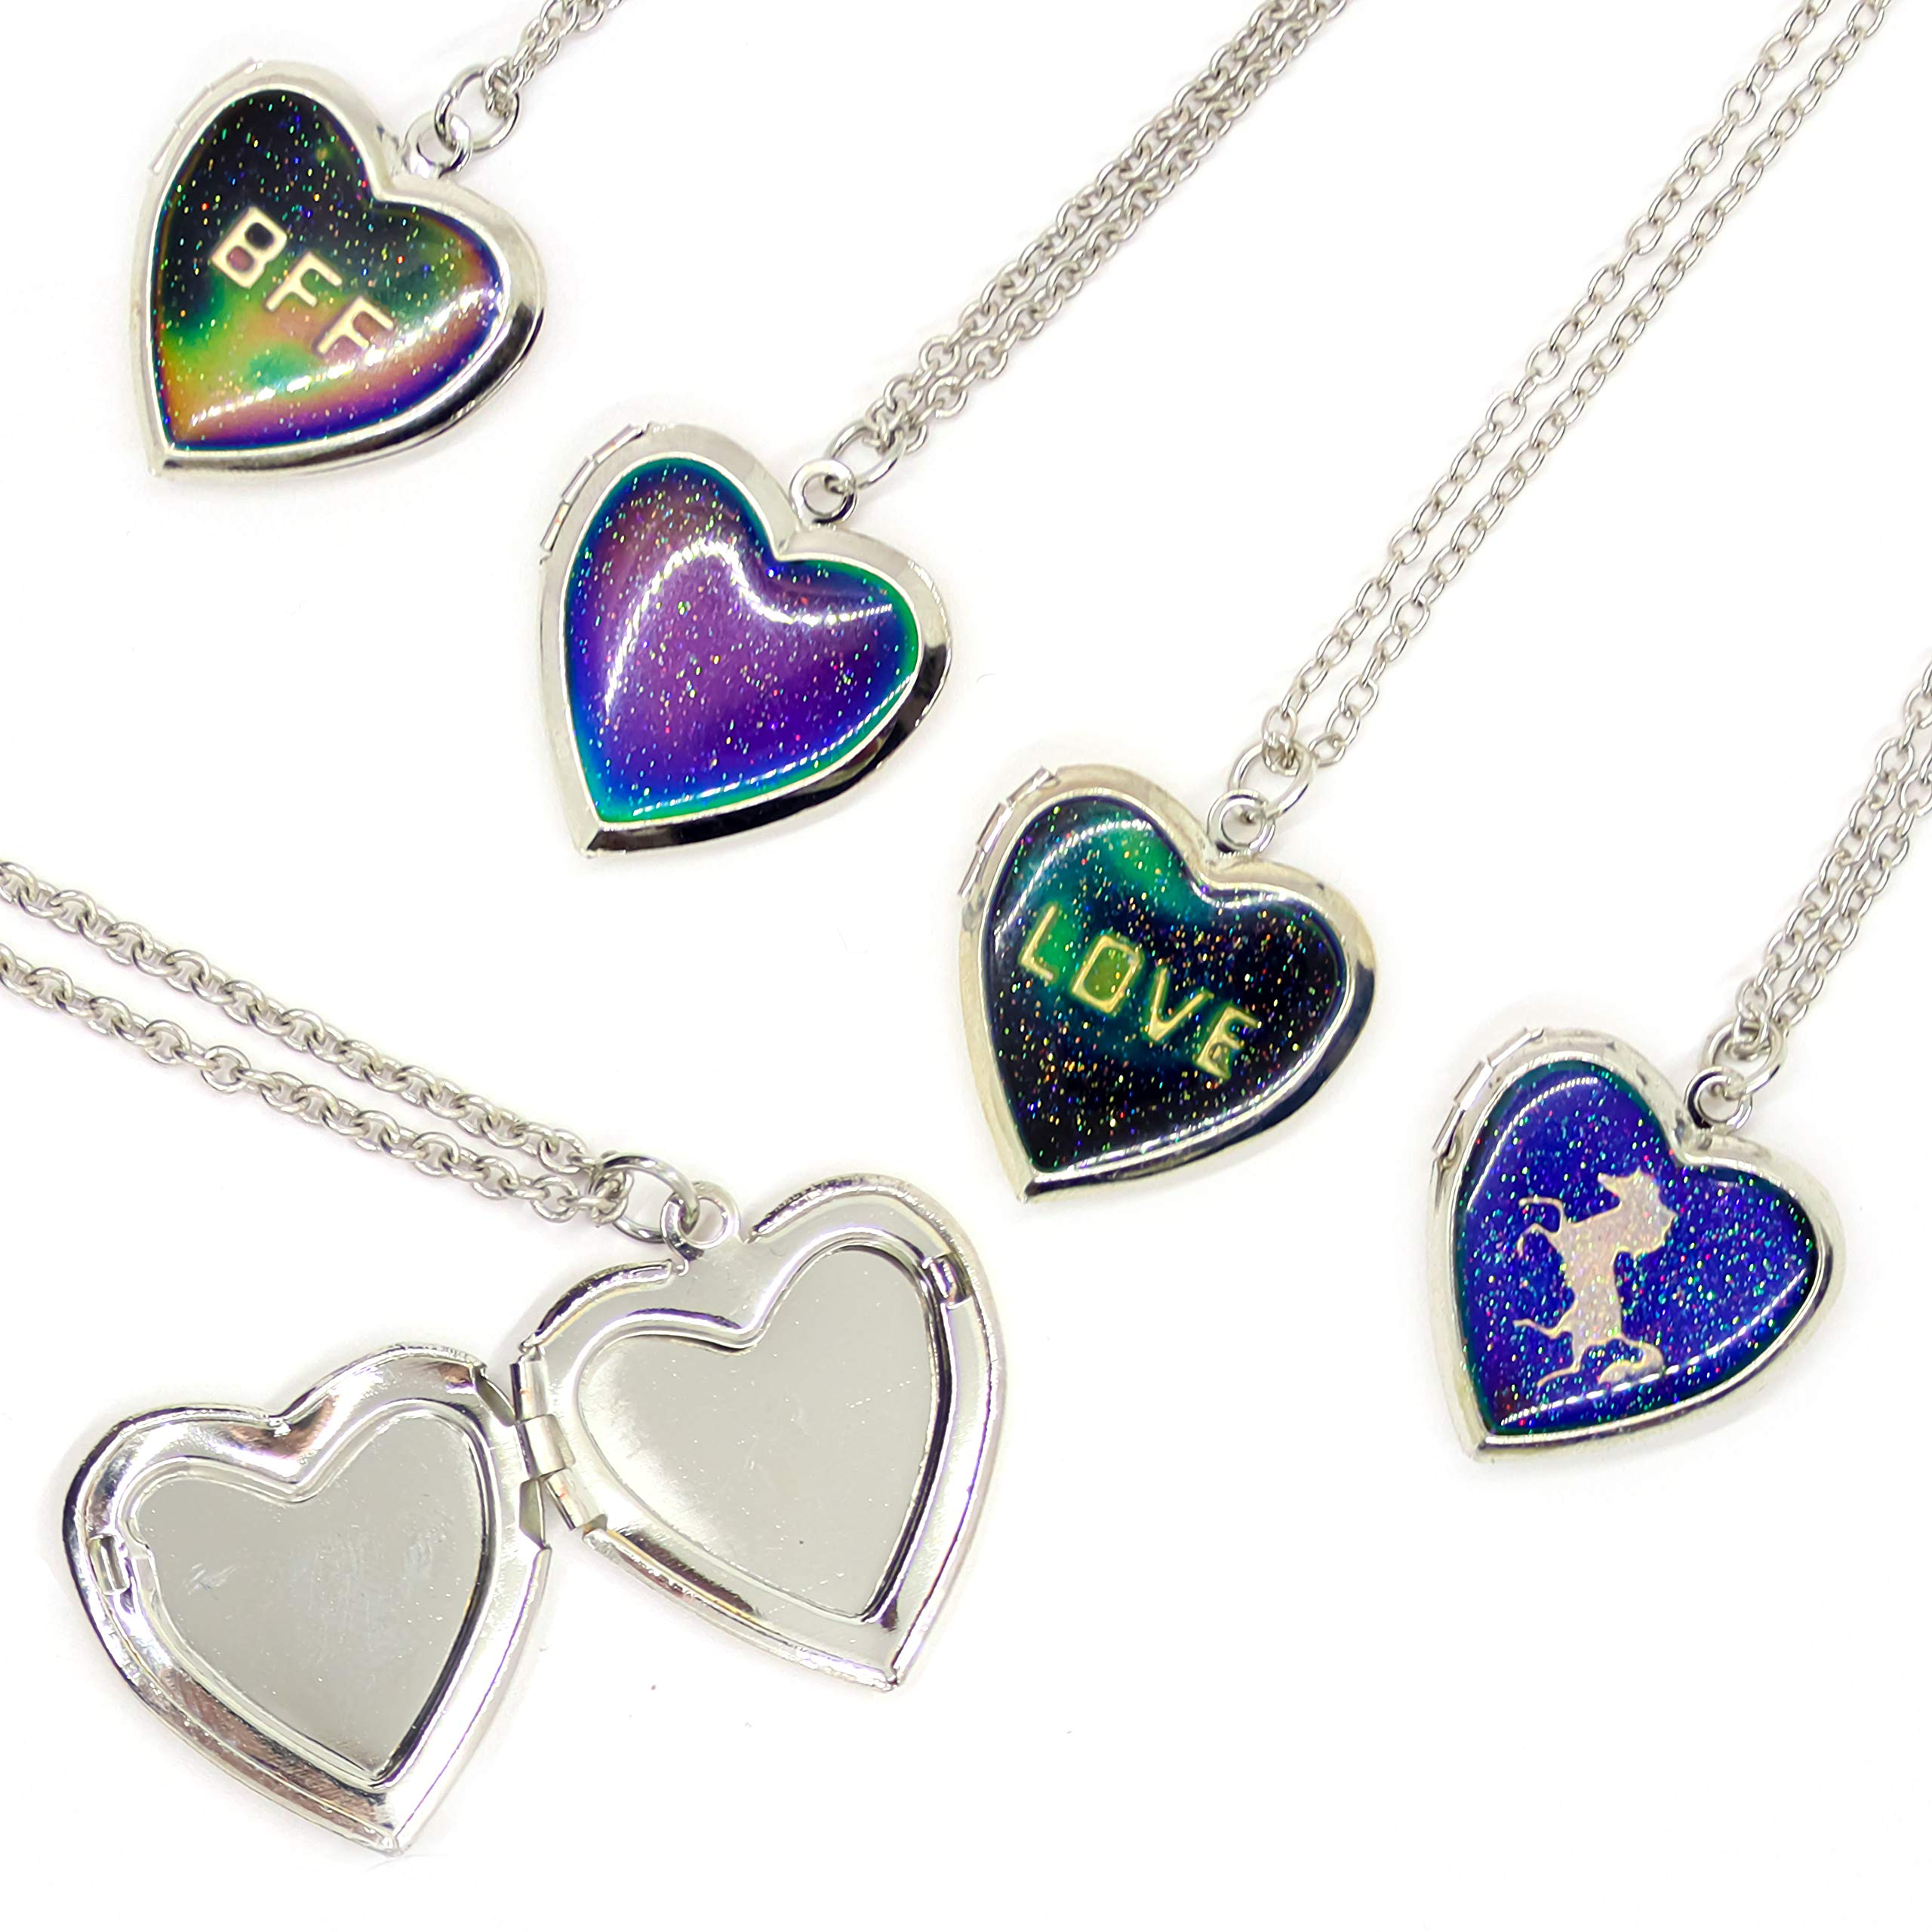 FROG SAC 4 Pcs Mood Locket Necklaces for Girls - Color Changing Mood Necklace Set with Glitter Heart Locket Pendants - Unicorn, BFF, Love and Plain Heart Glitter Pendants - Mood Jewelry for Girls by FROG SAC